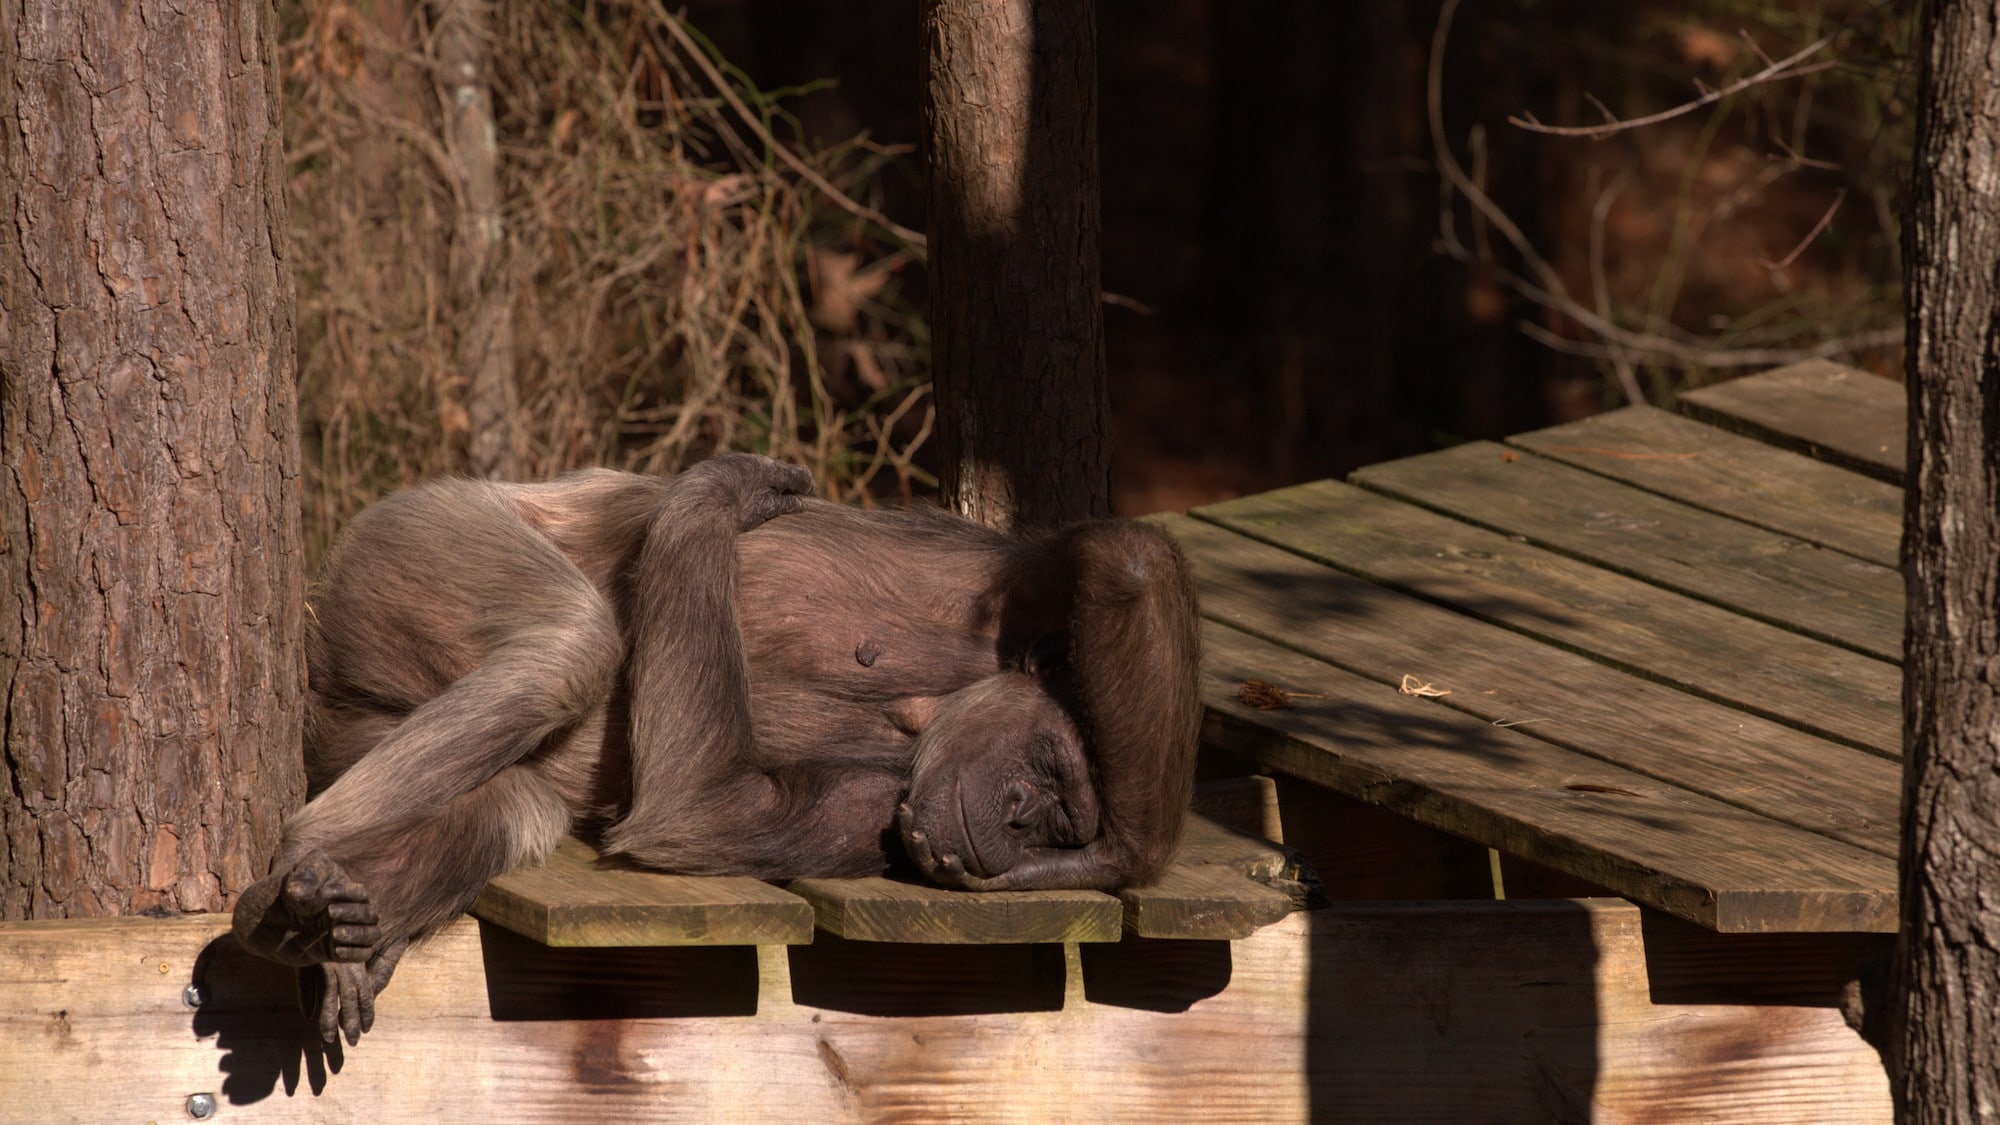 Flora sleeping on a platform in the summer heat. Sara Soda's group. (National Geographic/Jack Chapman)